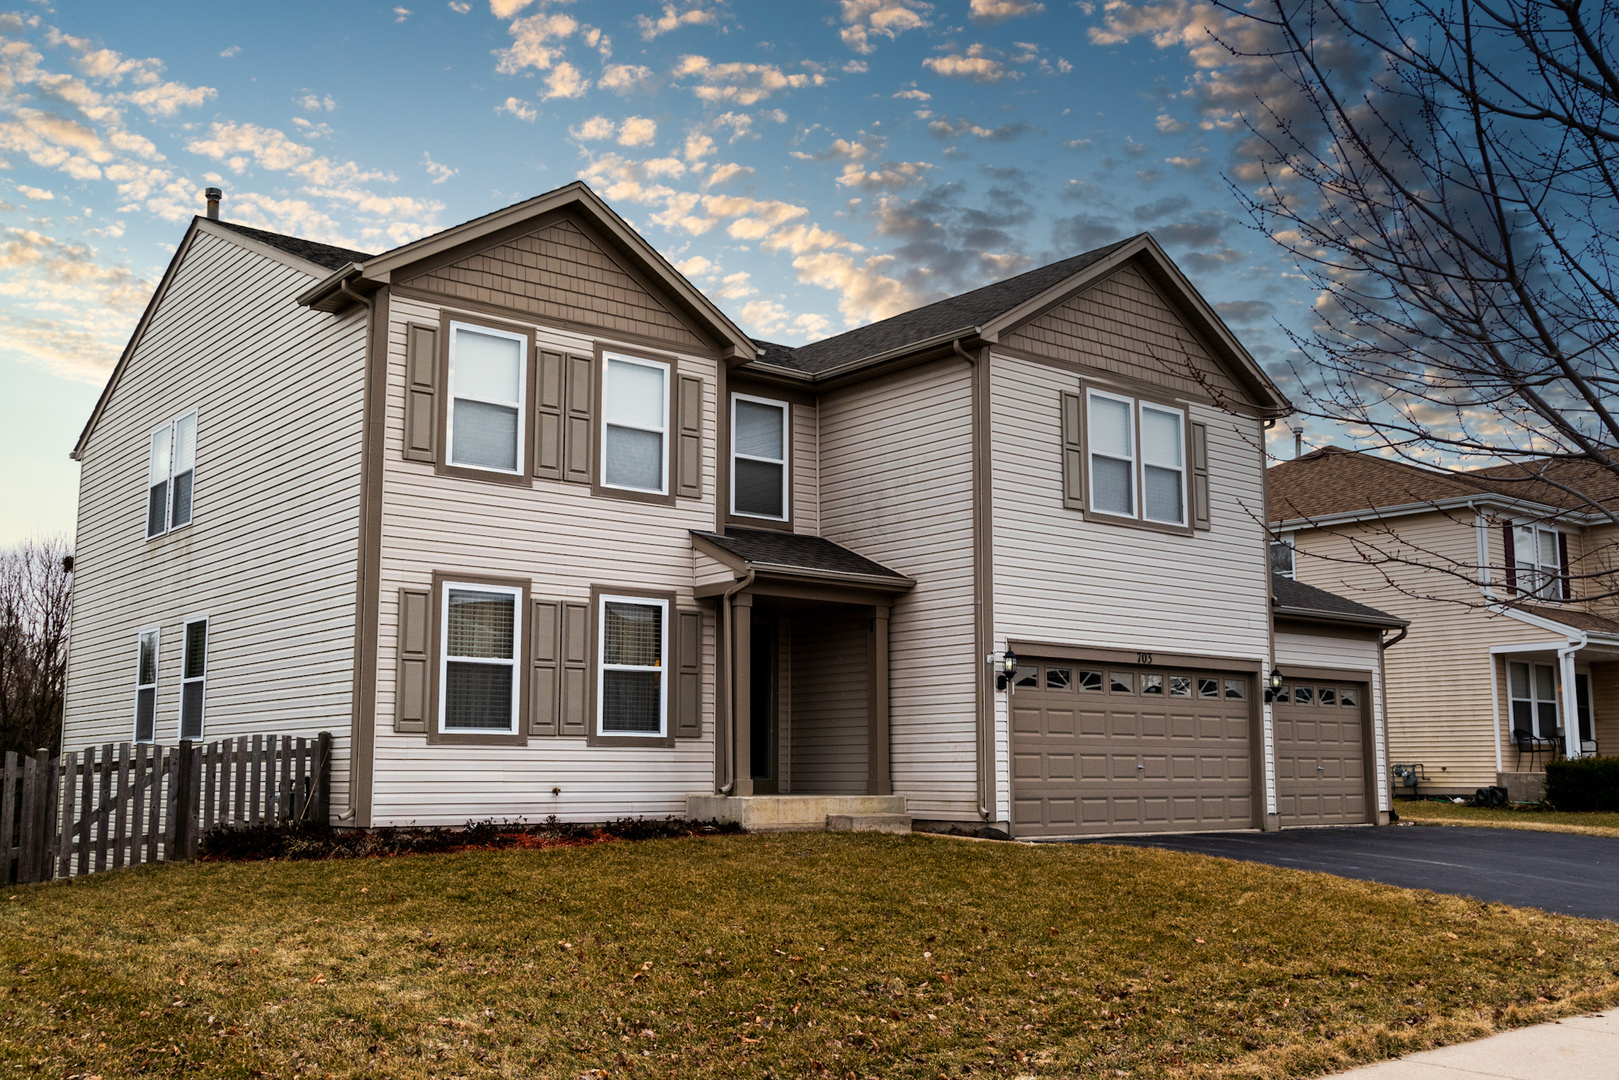 Photo for 703 Spring Drive, Marengo, IL 60152 (MLS # 10669247)